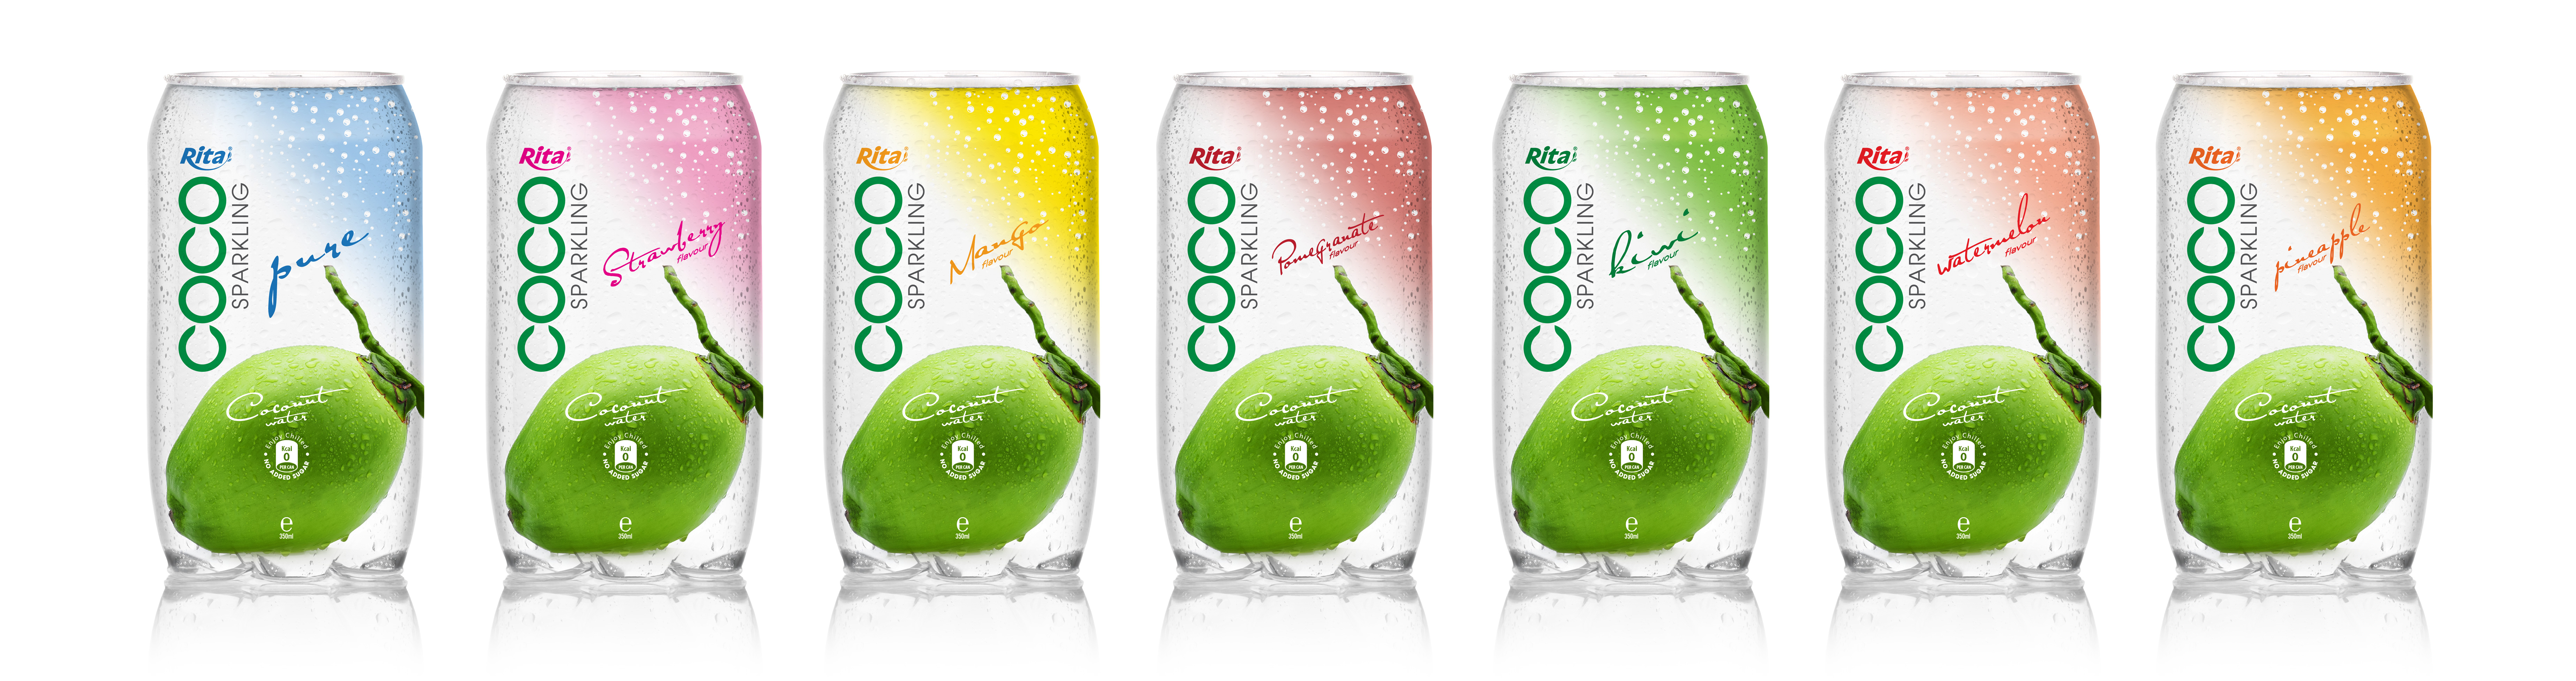 350ml  Pet bottle  Sparking coconut water  with strawberry juice